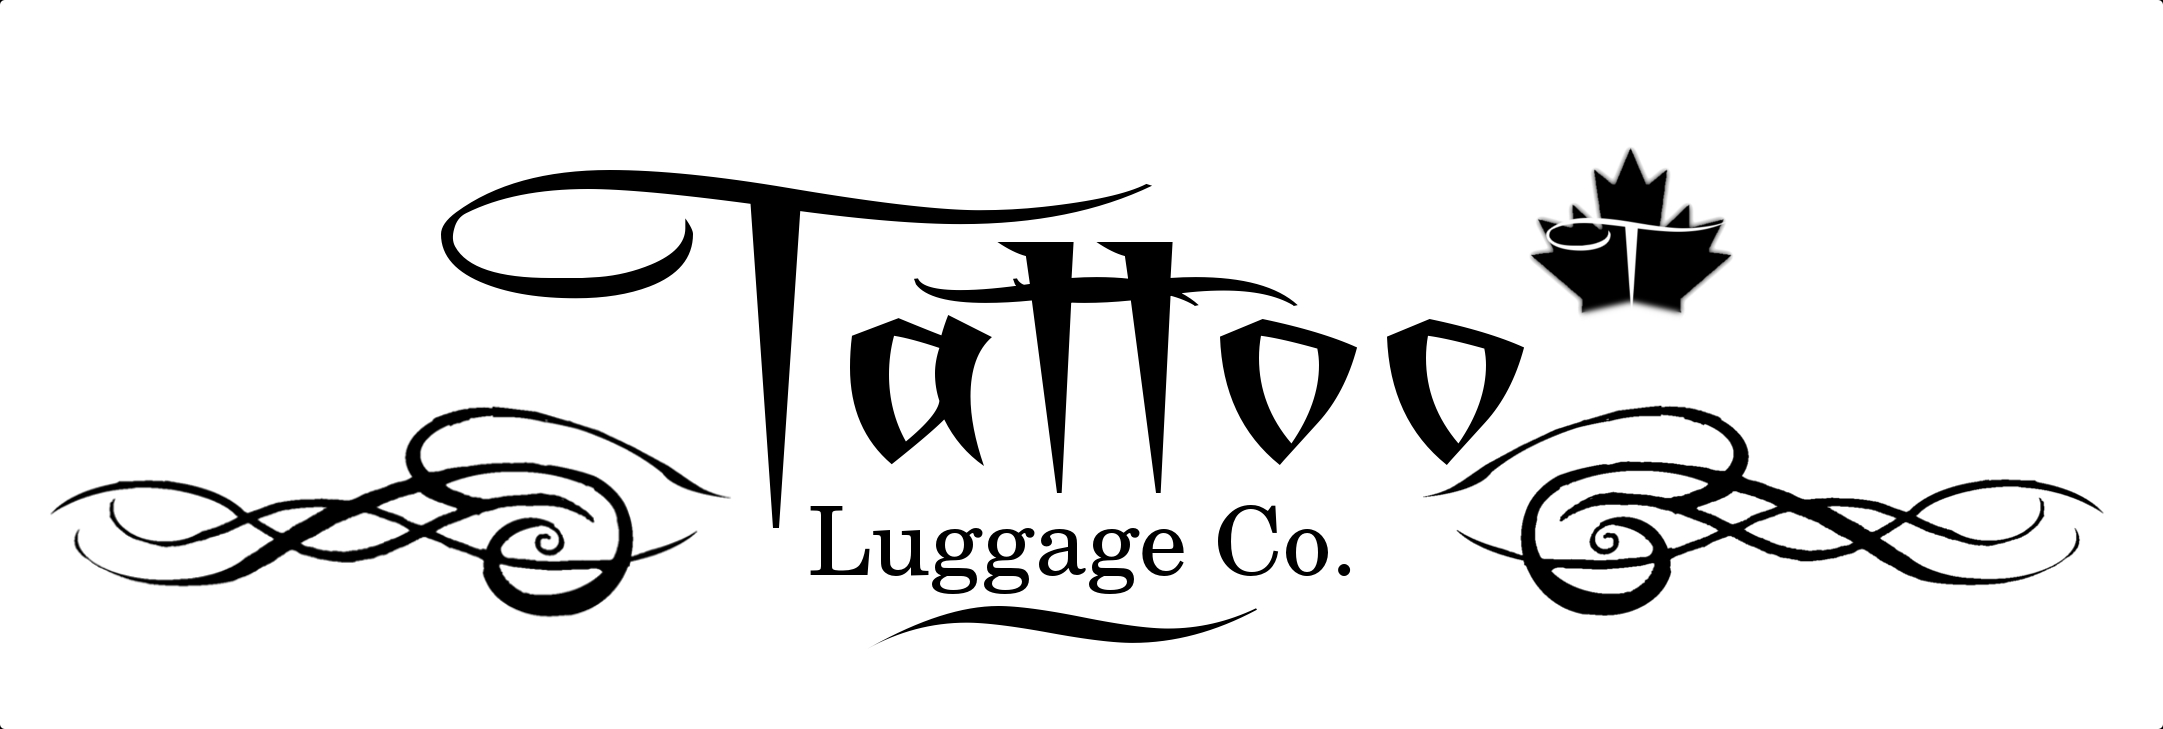 Logo Design by Eric Vincent - Entry No. 39 in the Logo Design Contest Artistic Logo Design for Tattoo Luggage Company.